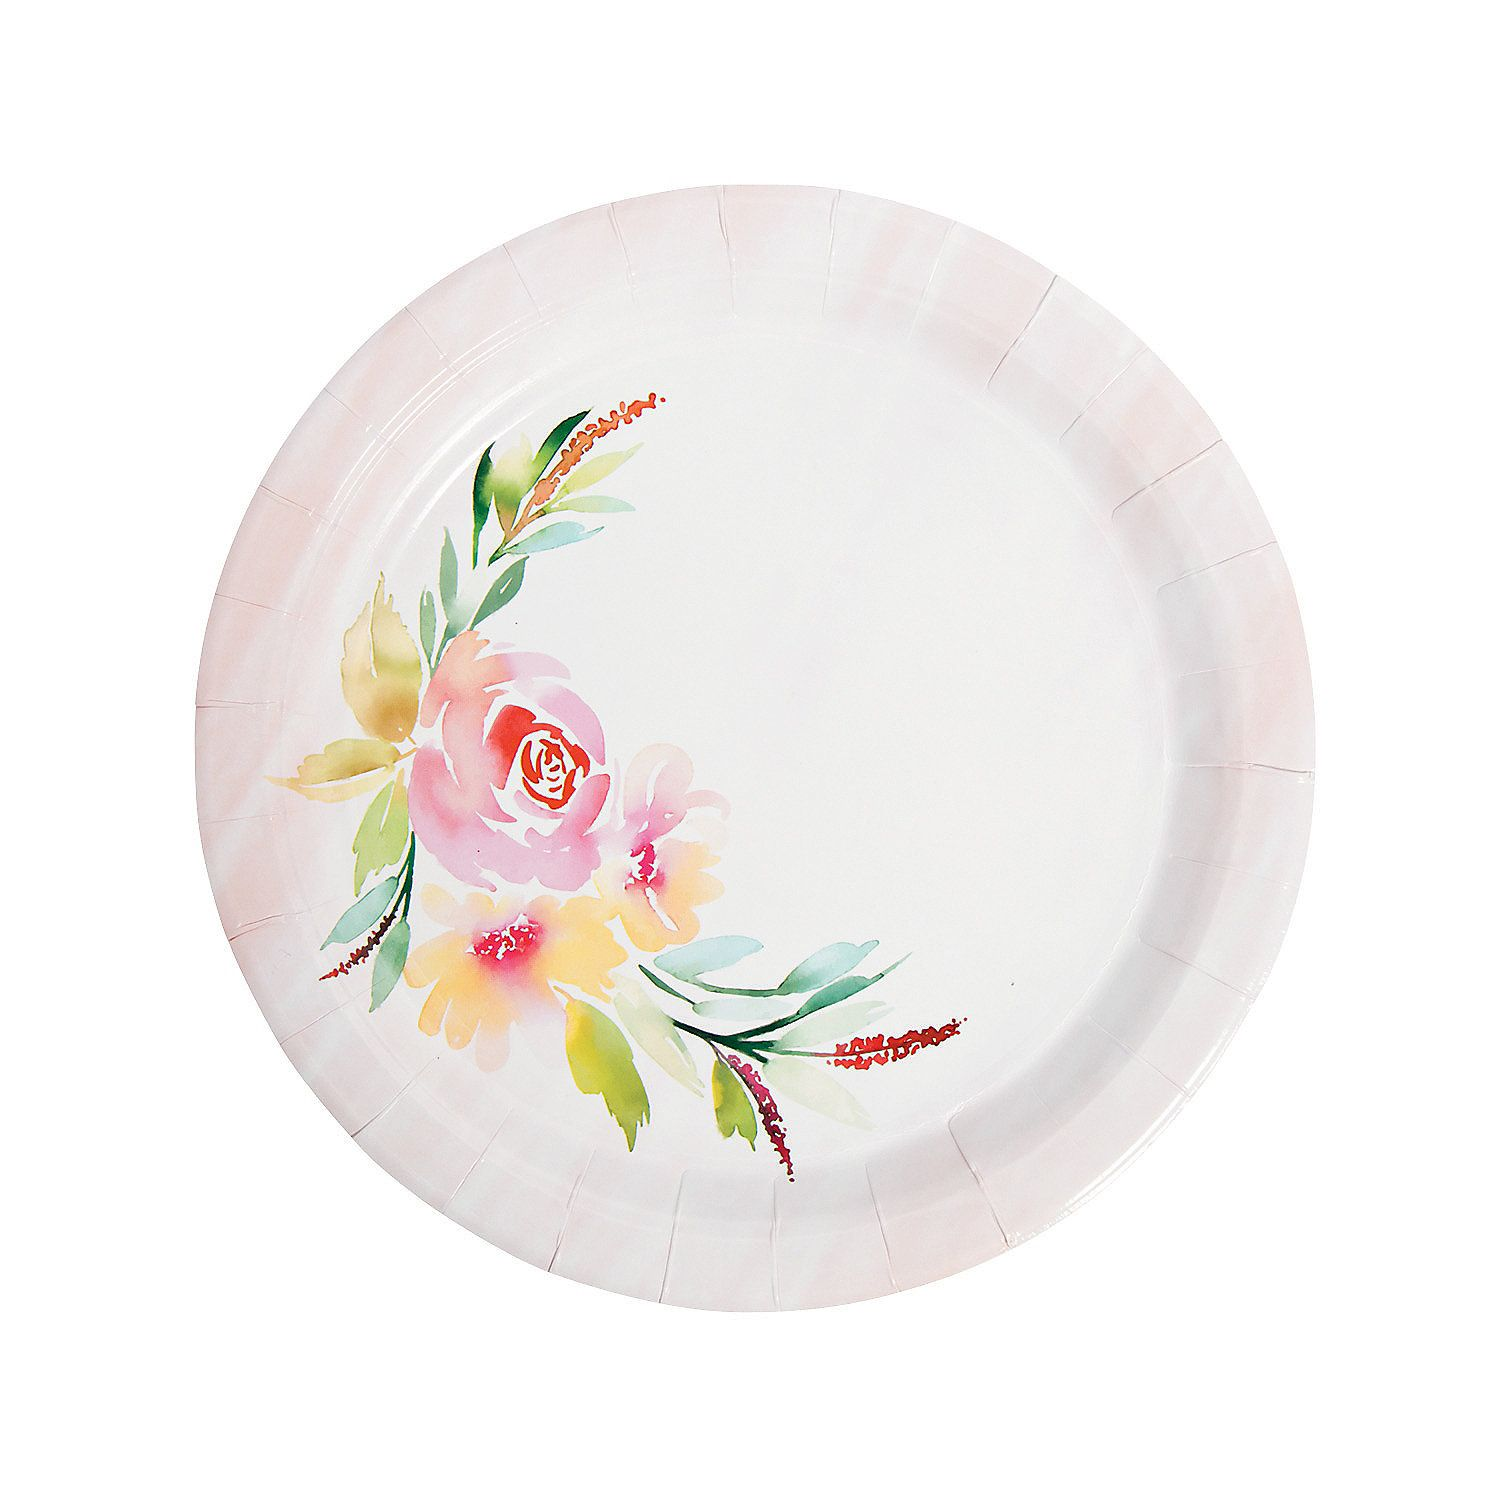 Garden Party Paper Dinner Plates  sc 1 st  Pinterest & Garden Party Paper Dinner Plates | Birthdays Hawaiian baby showers ...